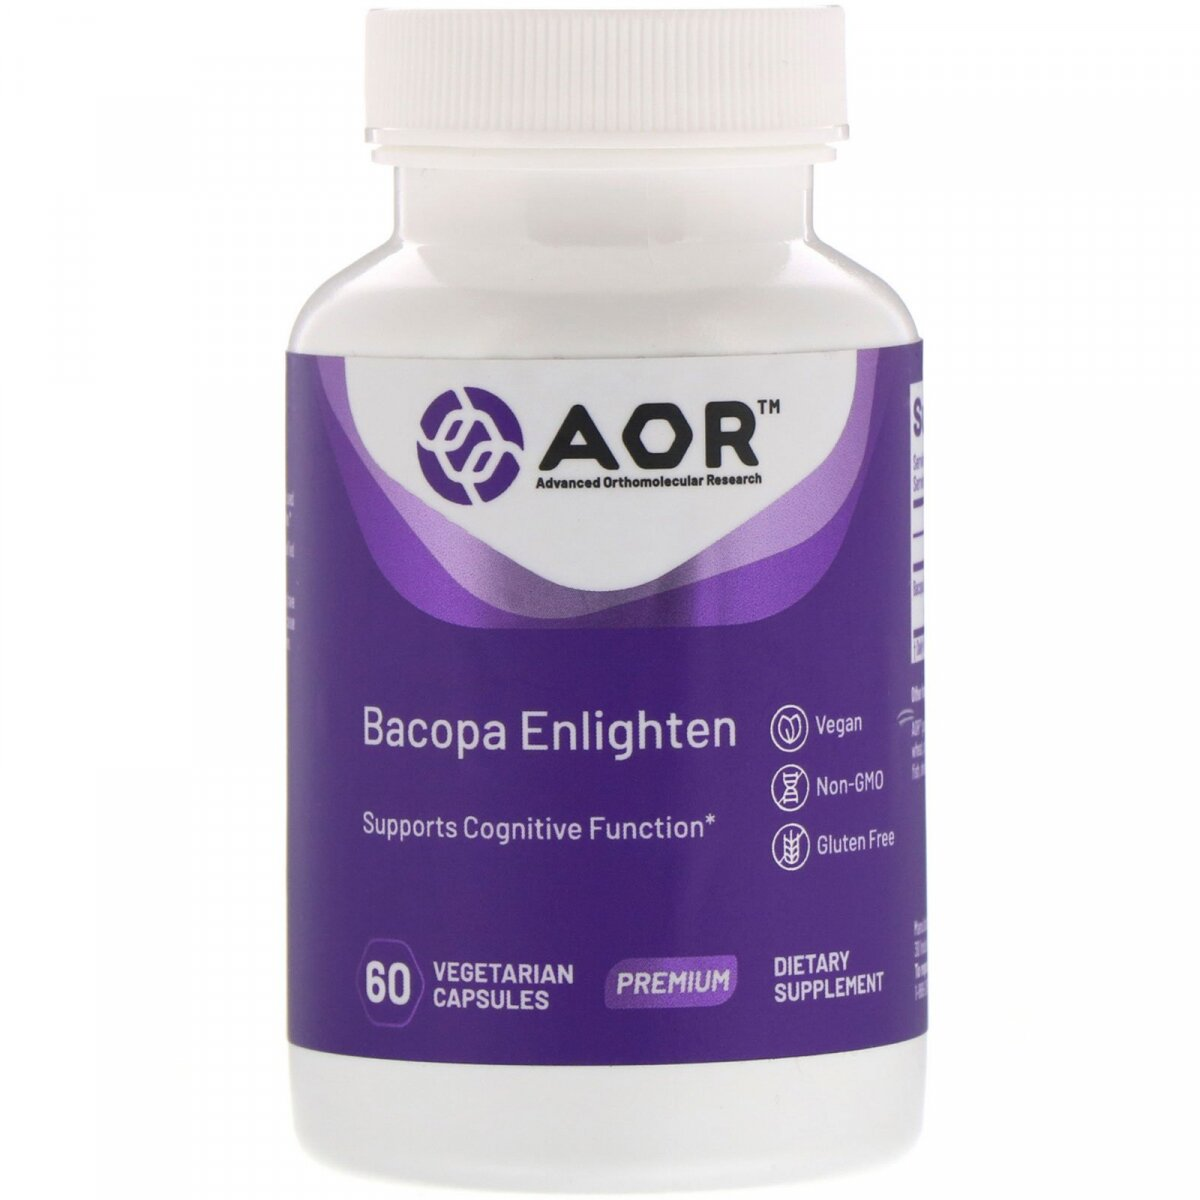 Bacopa Enlighten, Advanced Orthomolecular Research AOR, 60 вегетарианских капсул